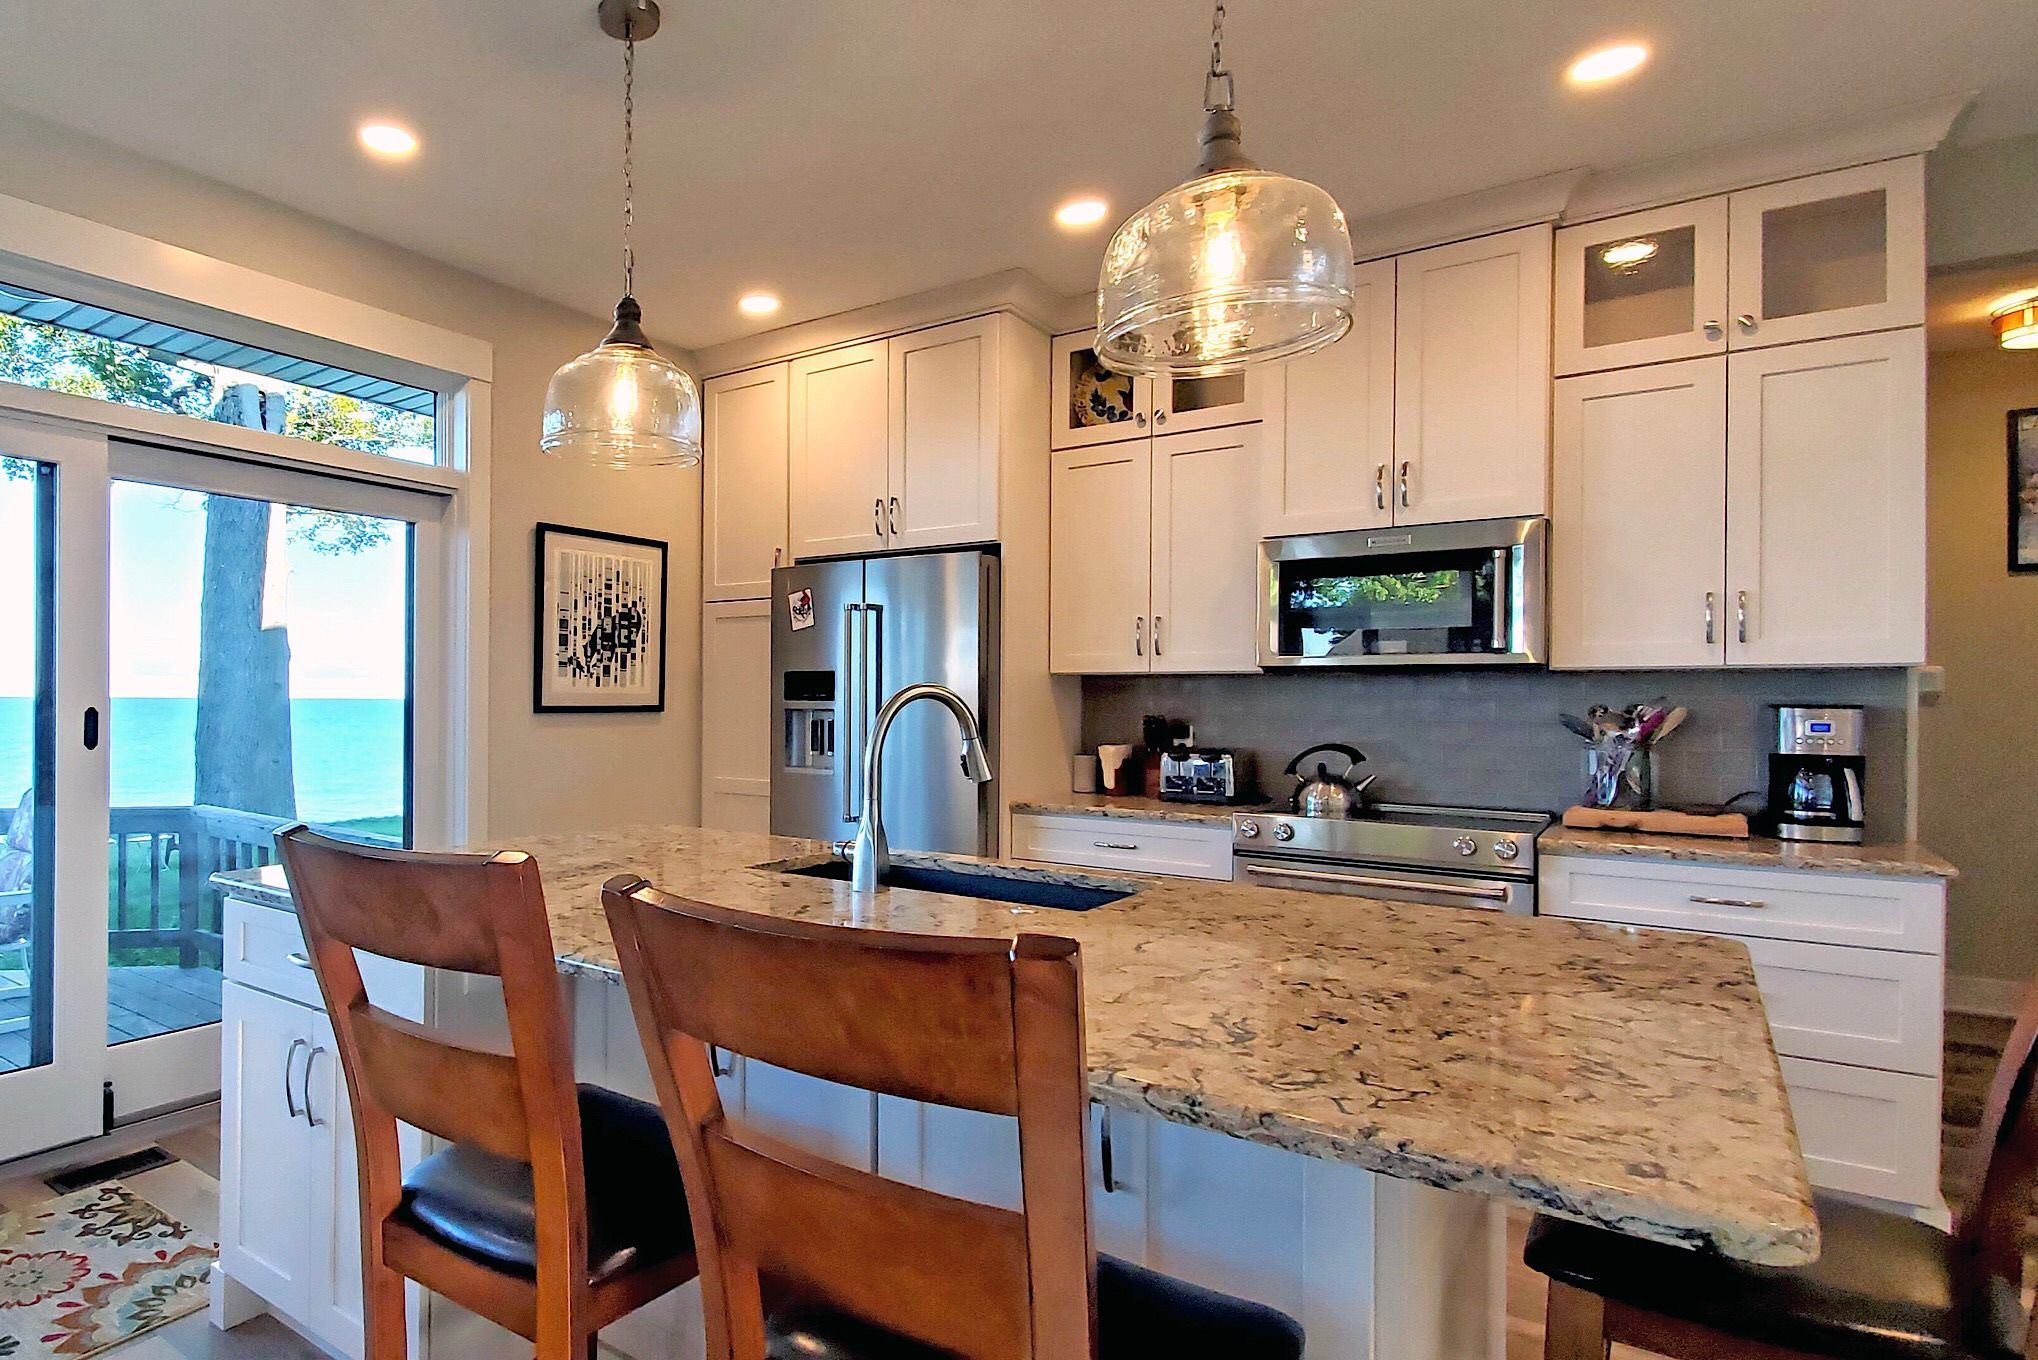 White shaker kitchen cabinets, hanging glass pendant lights, stainless steel appliances.